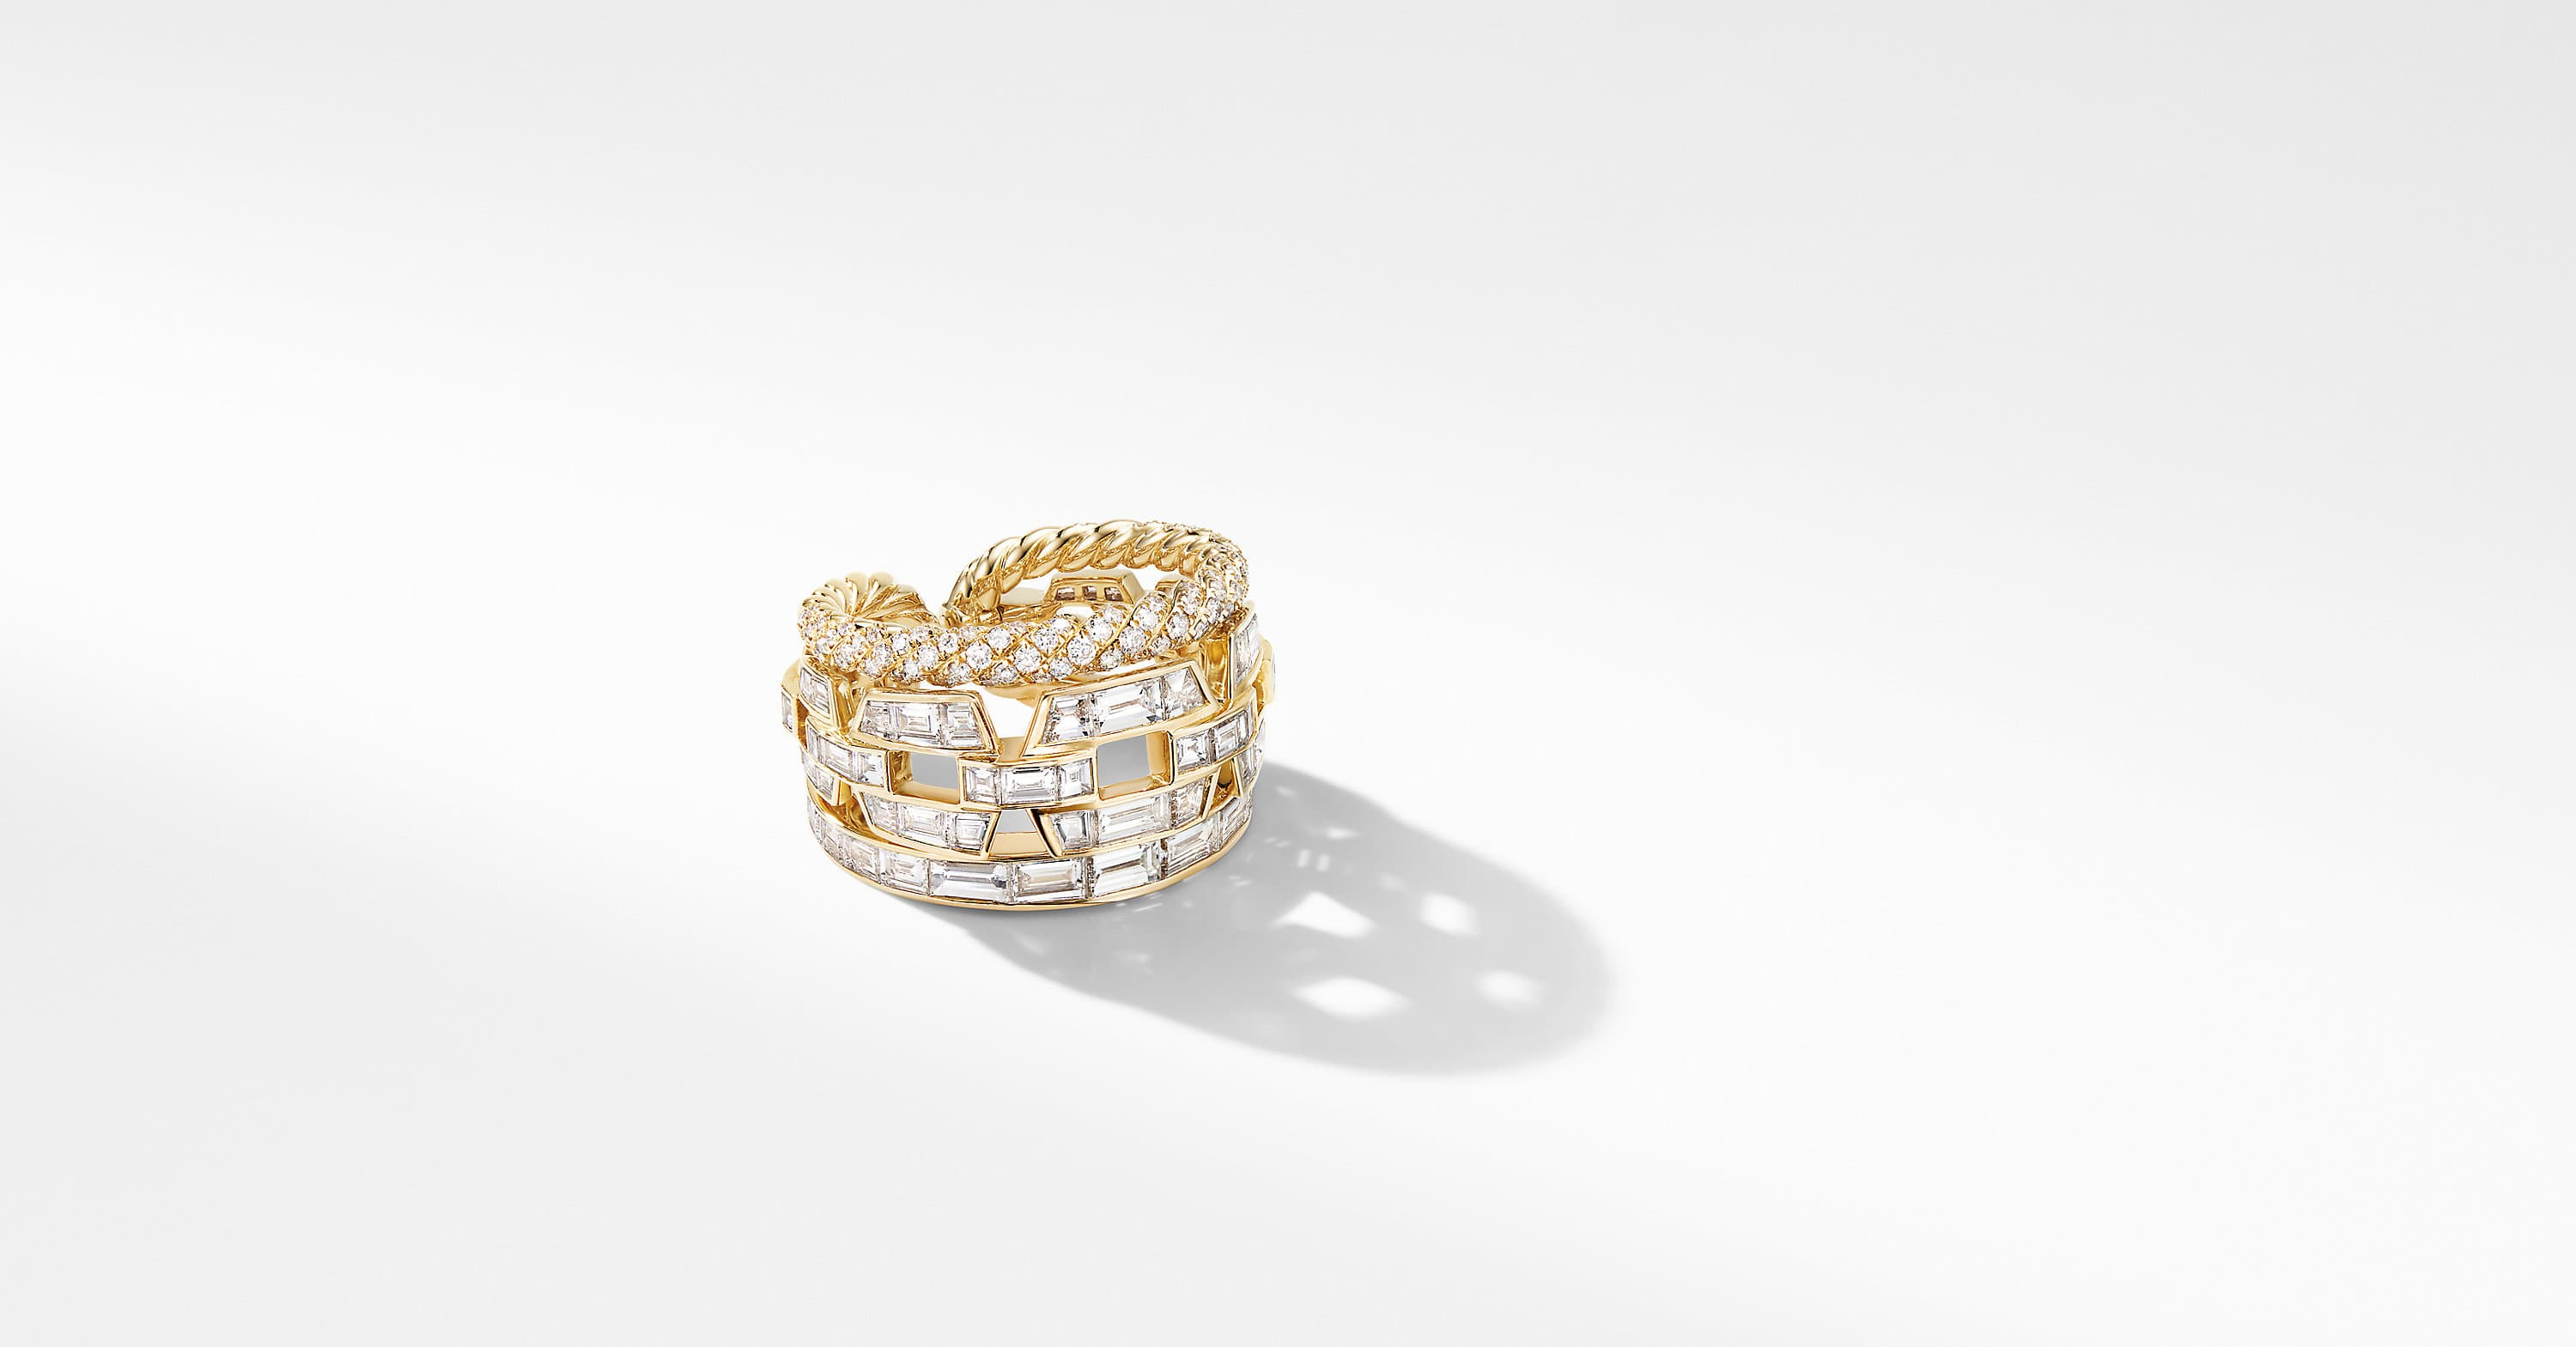 Stax Three Row Ring in Yellow Gold with Diamonds